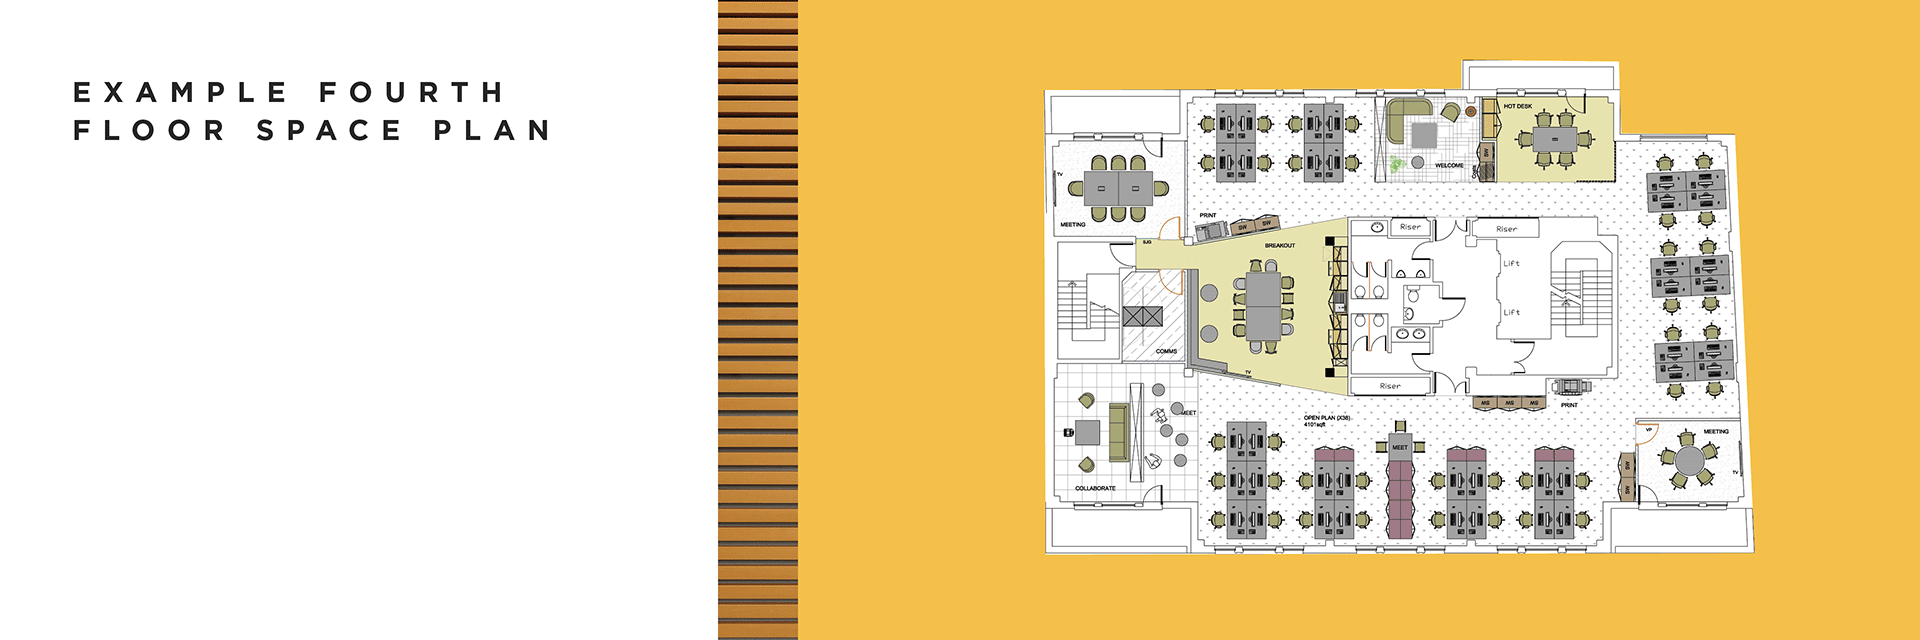 Fourth floor space plan